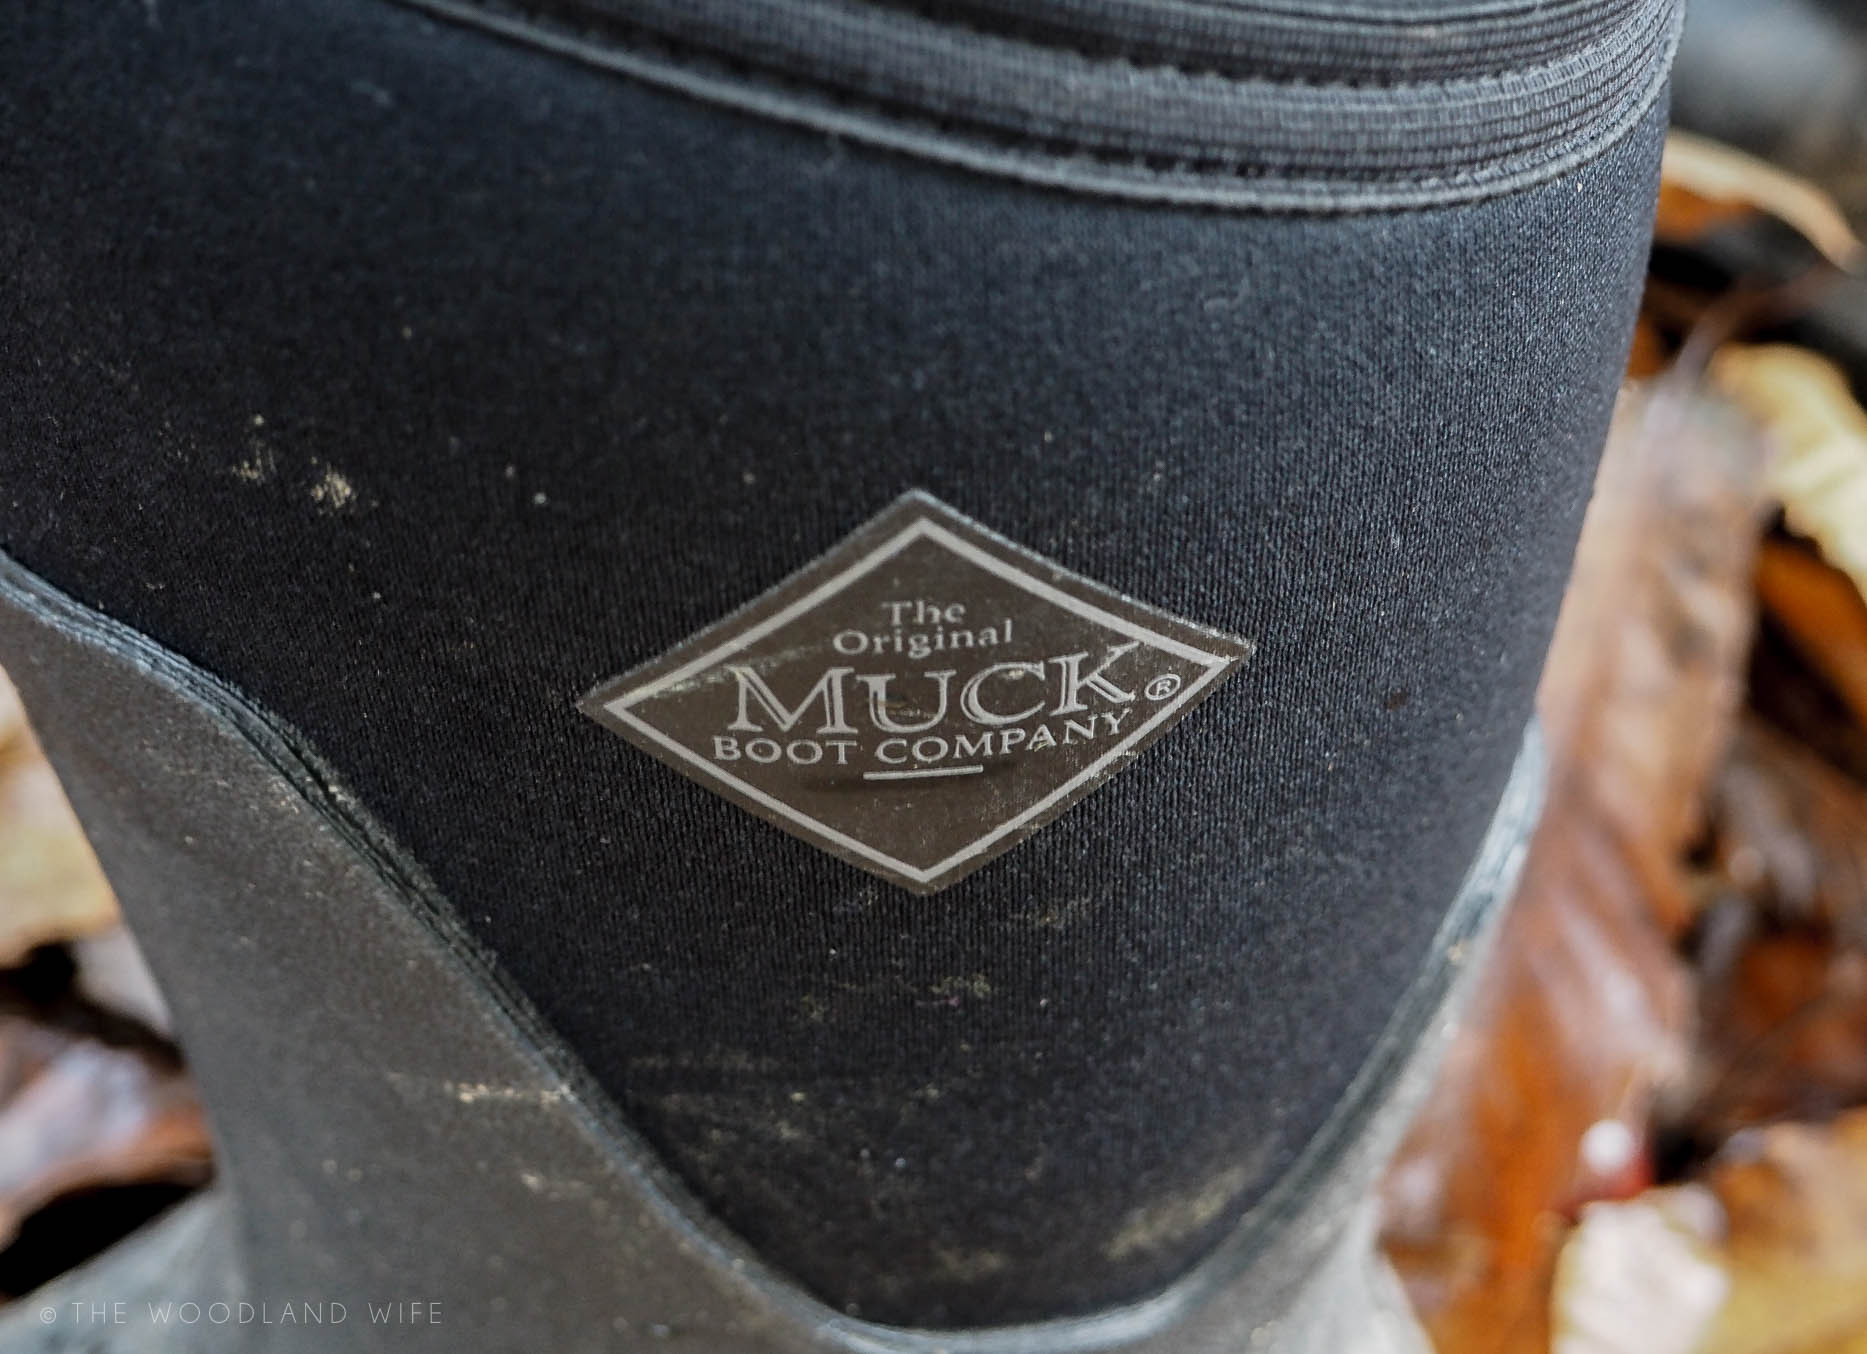 The Woodland Wife - Extreme Cold Winter Boots - The Original Muck Boot Company